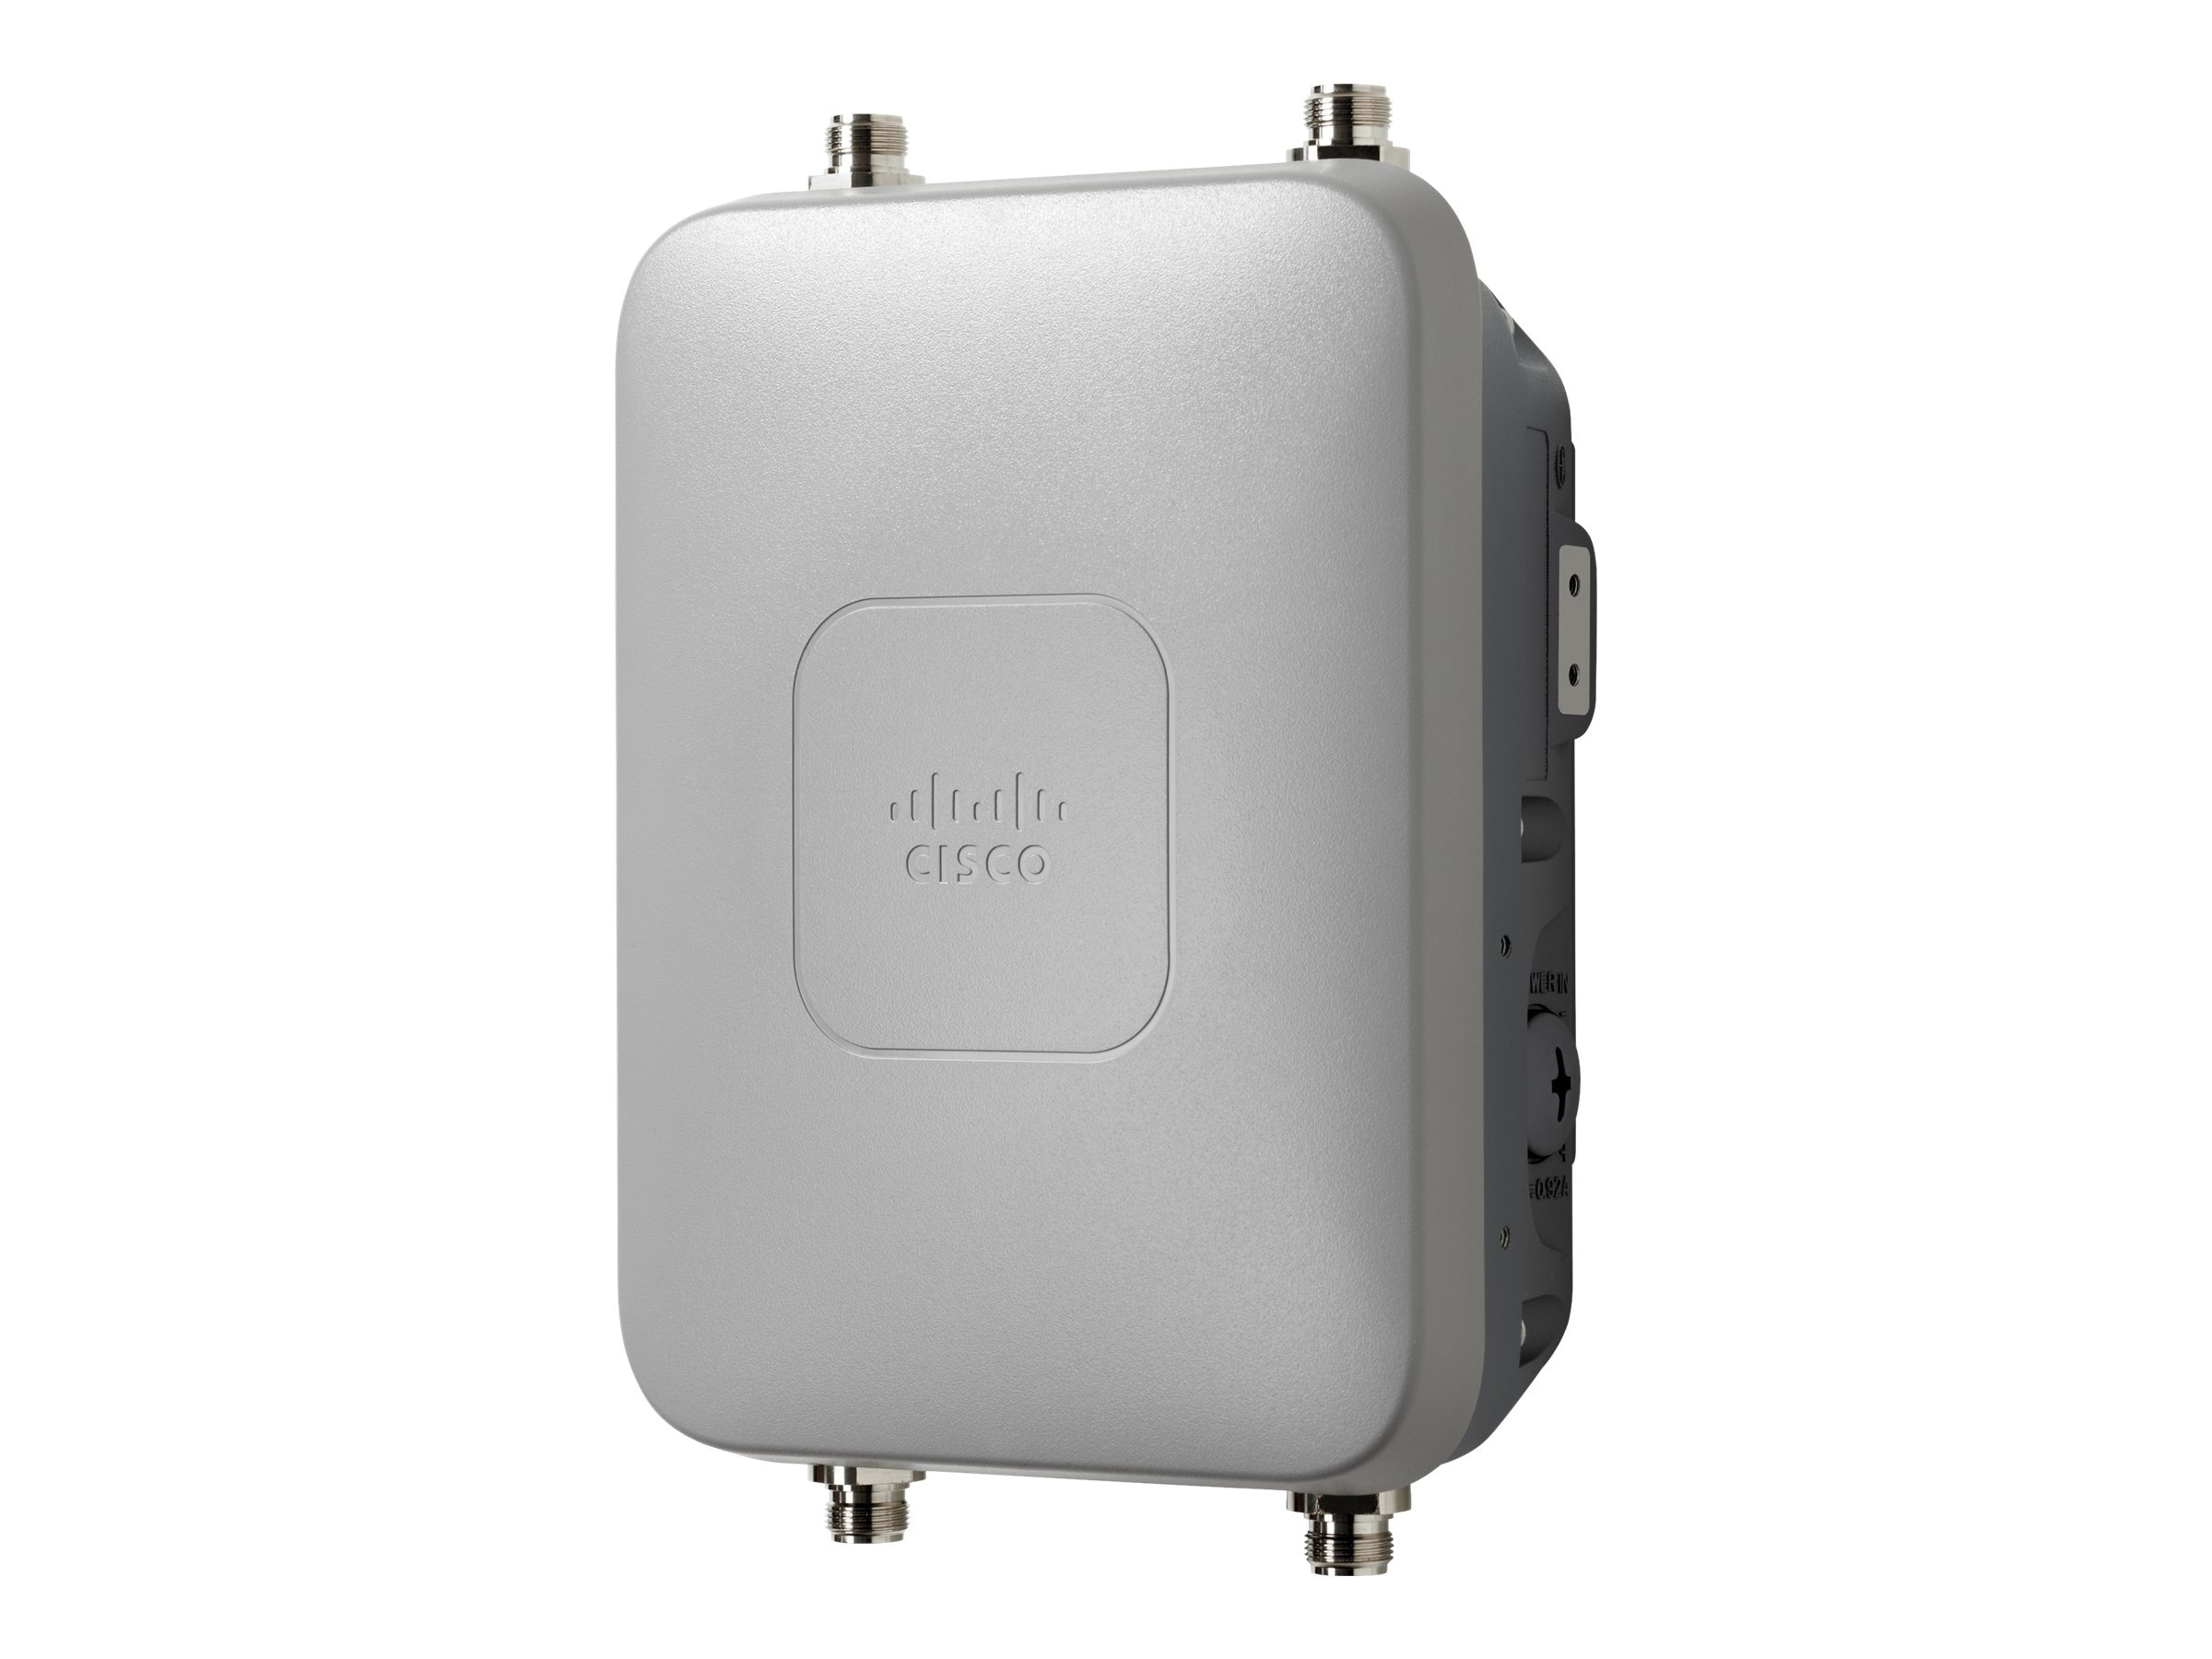 Cisco Aironet 1532e AP w Ext Antenna, Q Domain